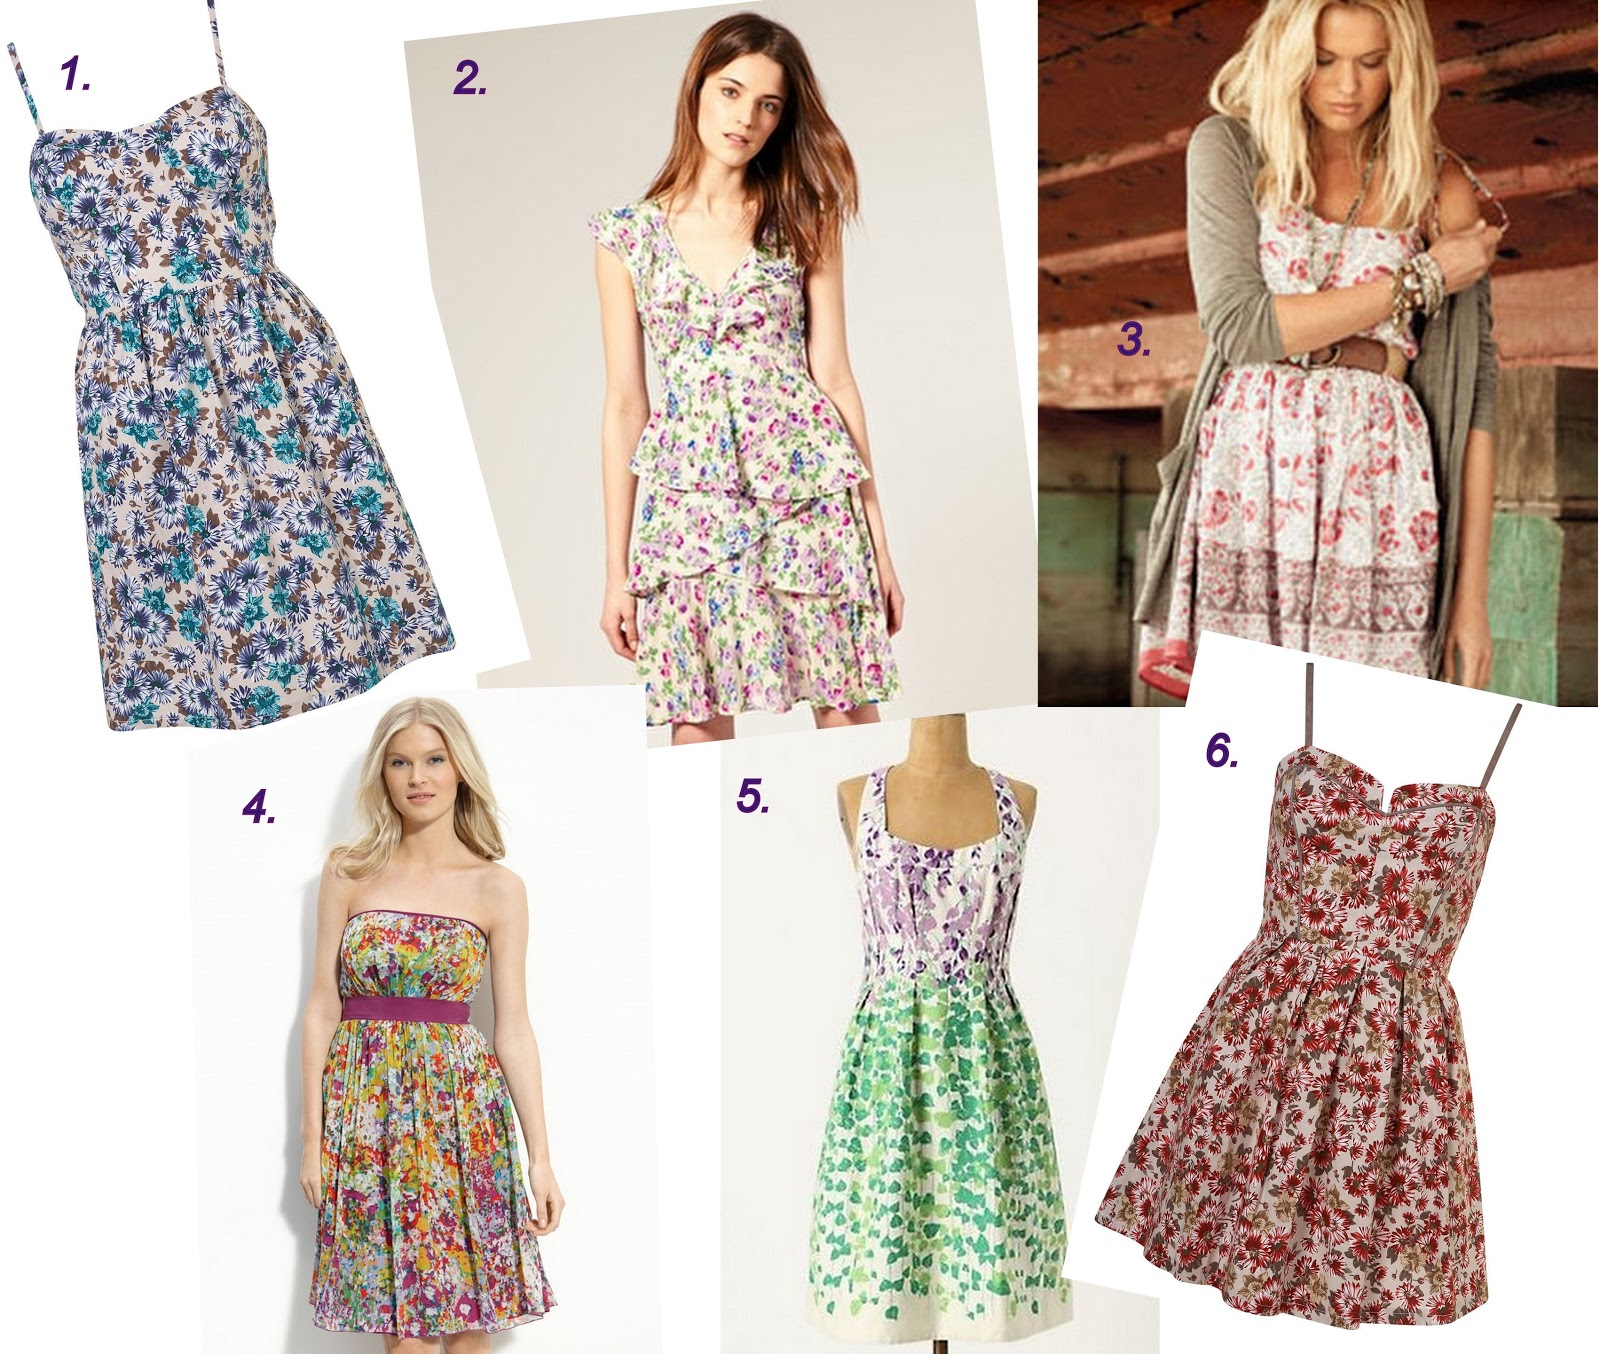 Ruby Mines Girl in Bloom Floral Prints and Dresses